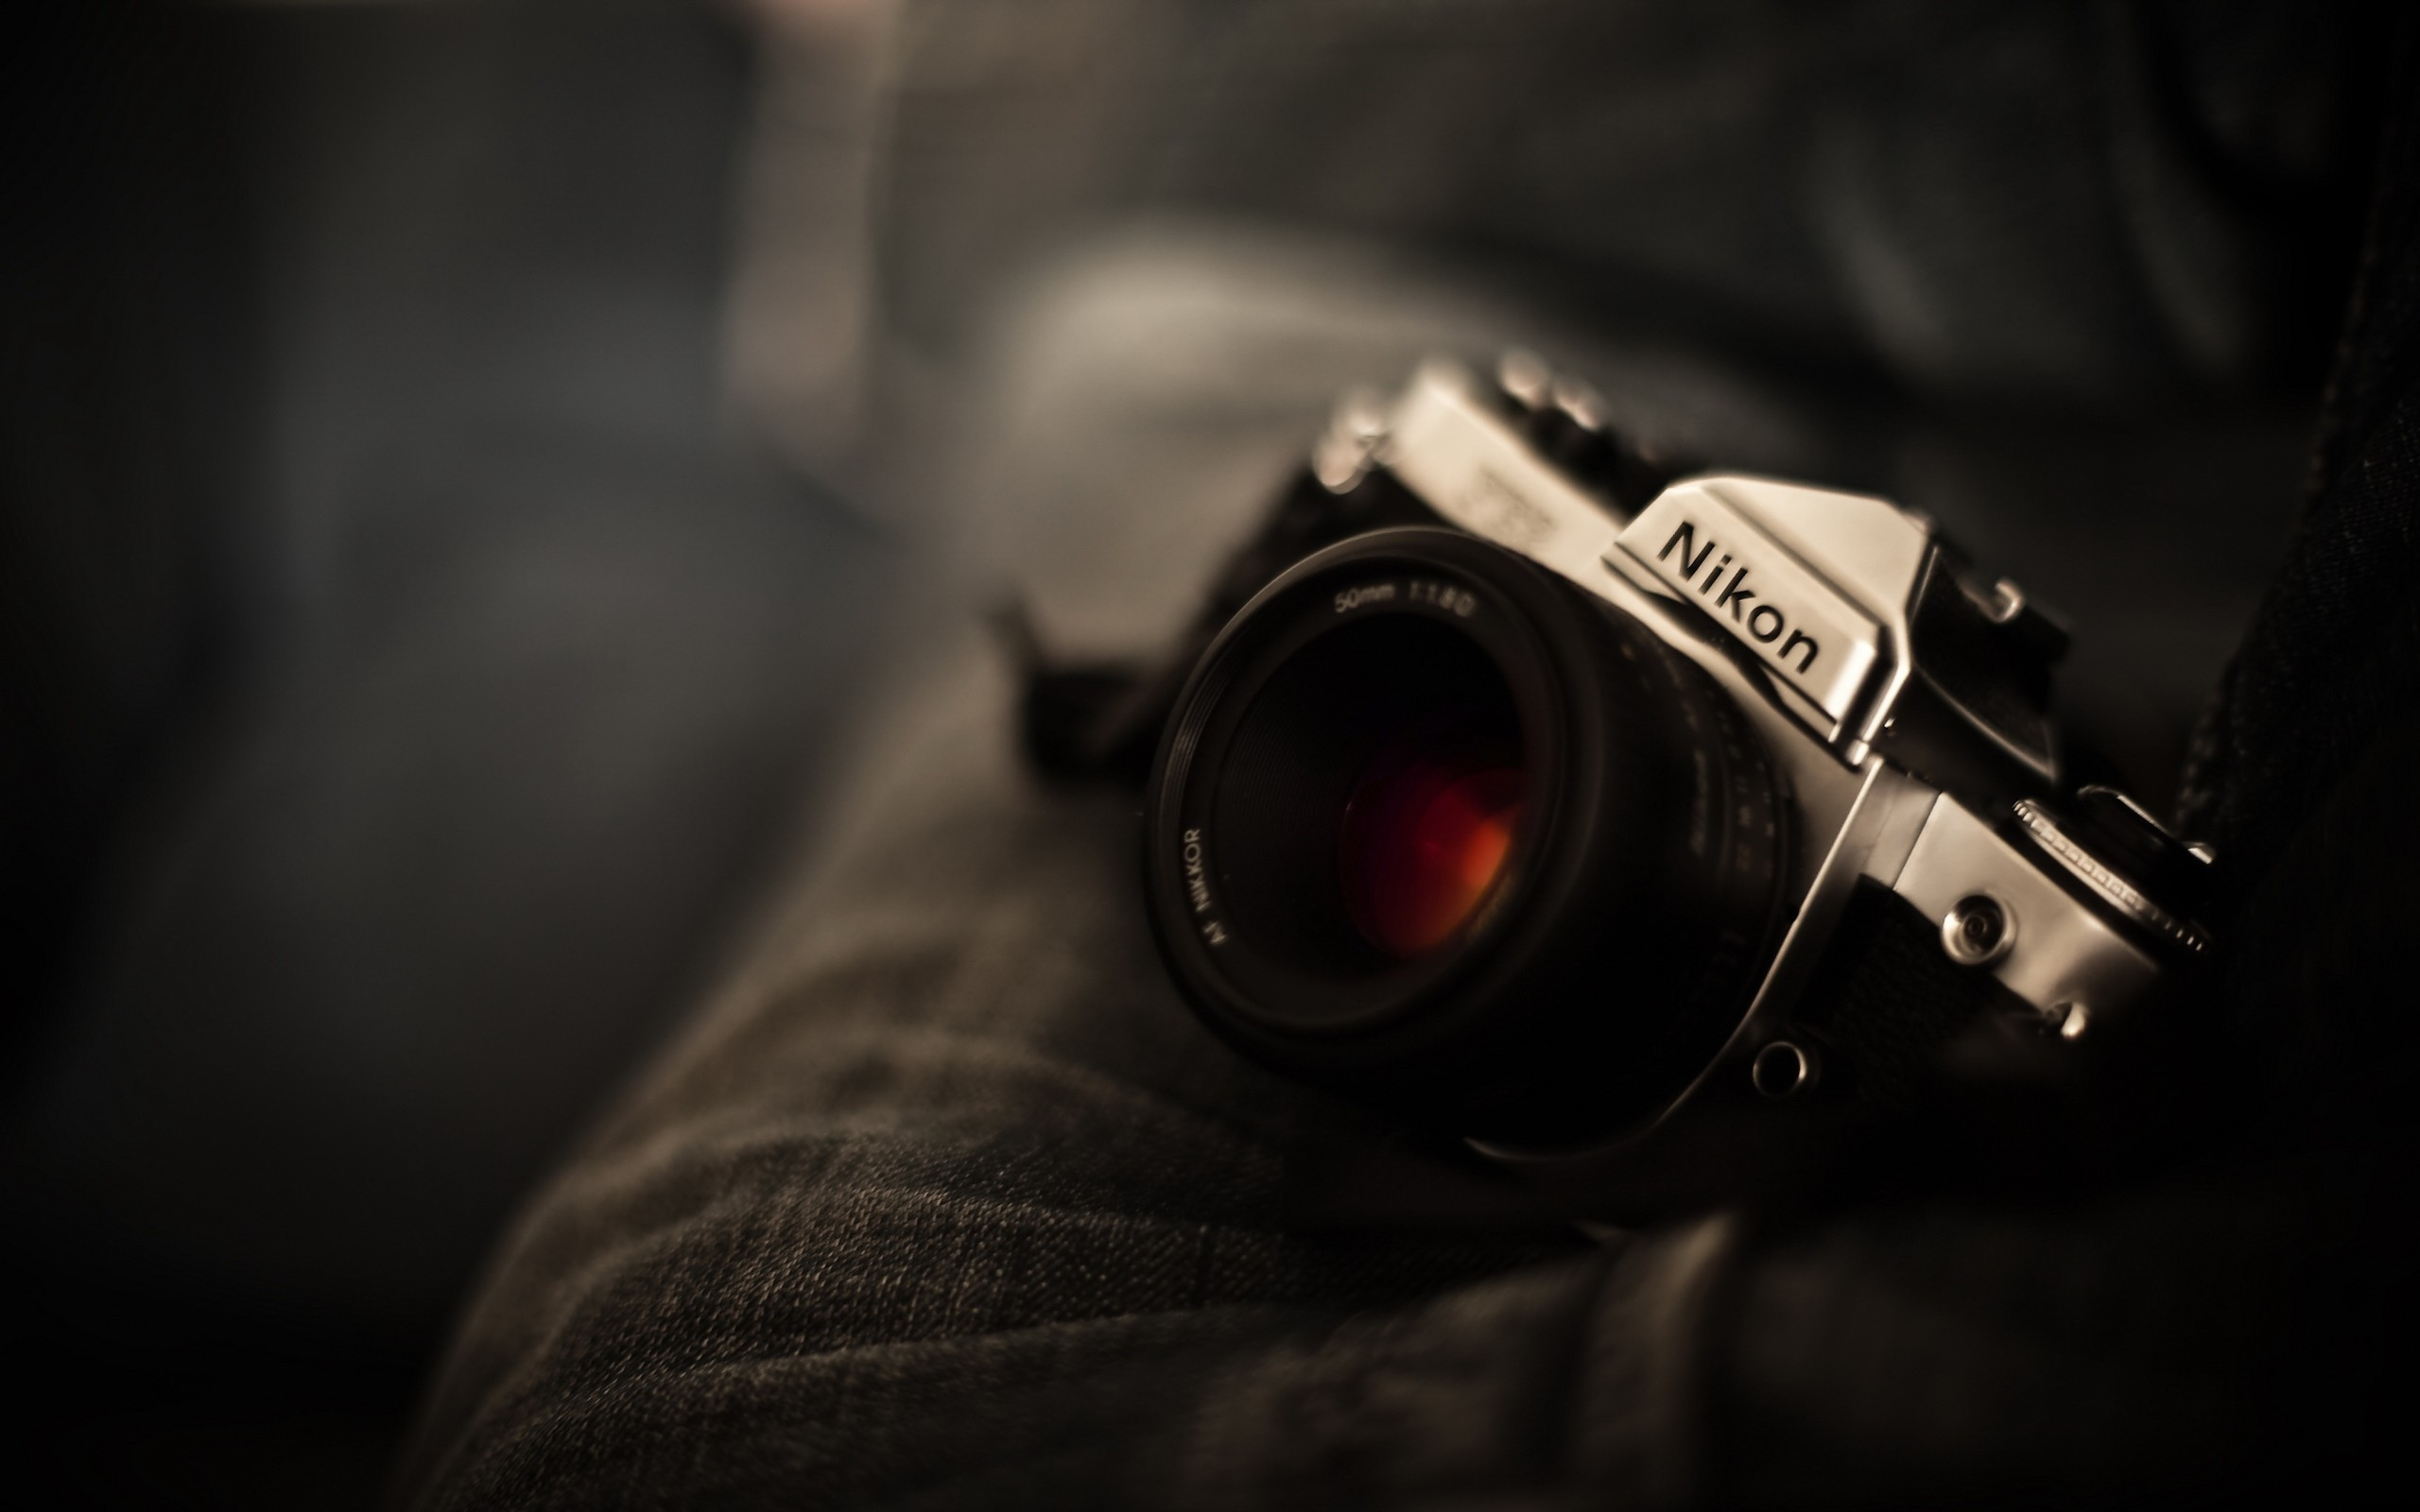 nikon-camera-photography-hd-wallpaper-2560×1600-6085 « mildwave